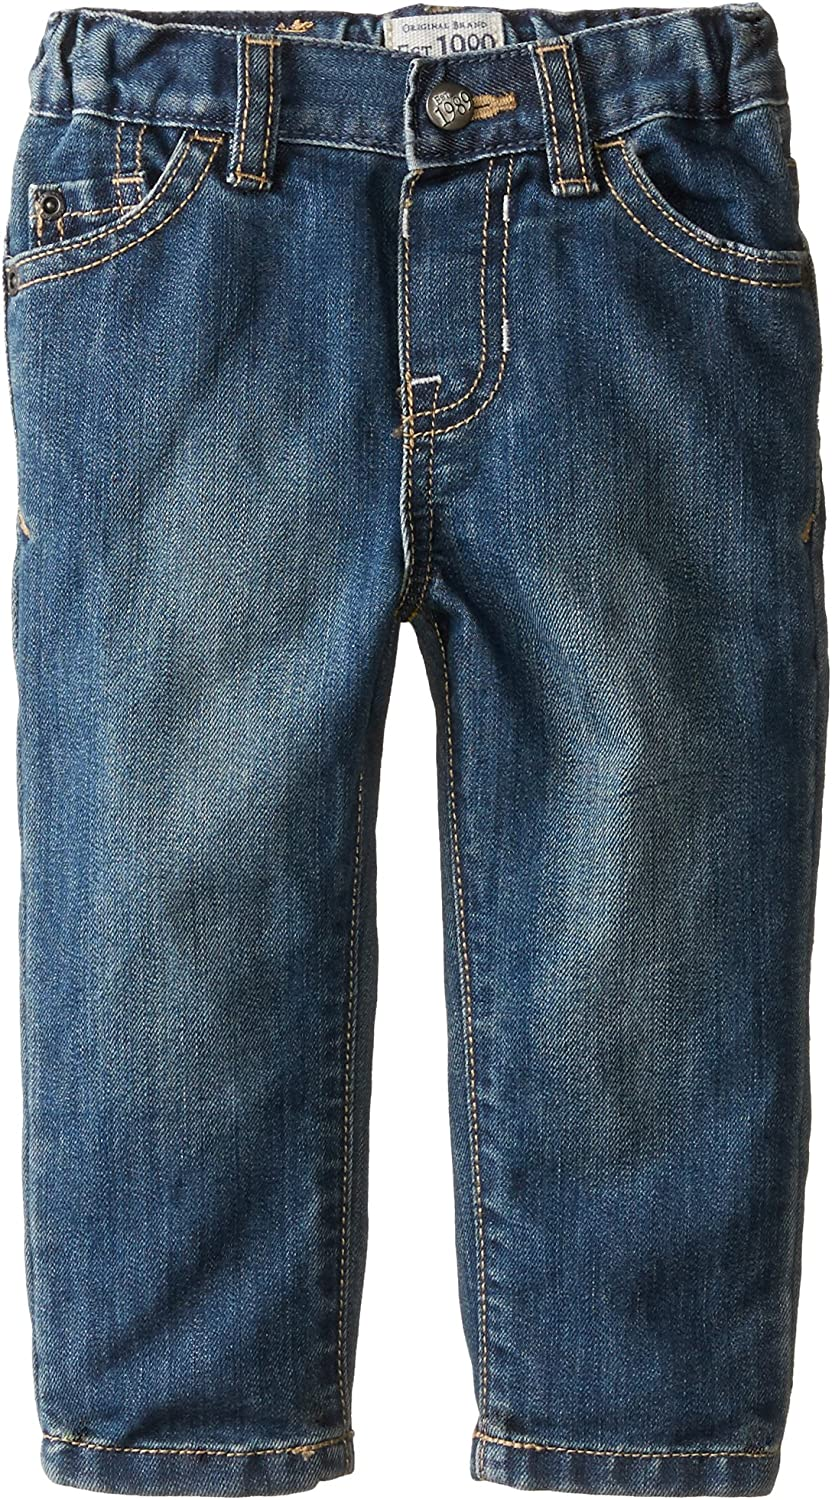 18-24 Months The Childrens Place Boys Baby and Toddler Basic Skinny Jeans Tide Pool